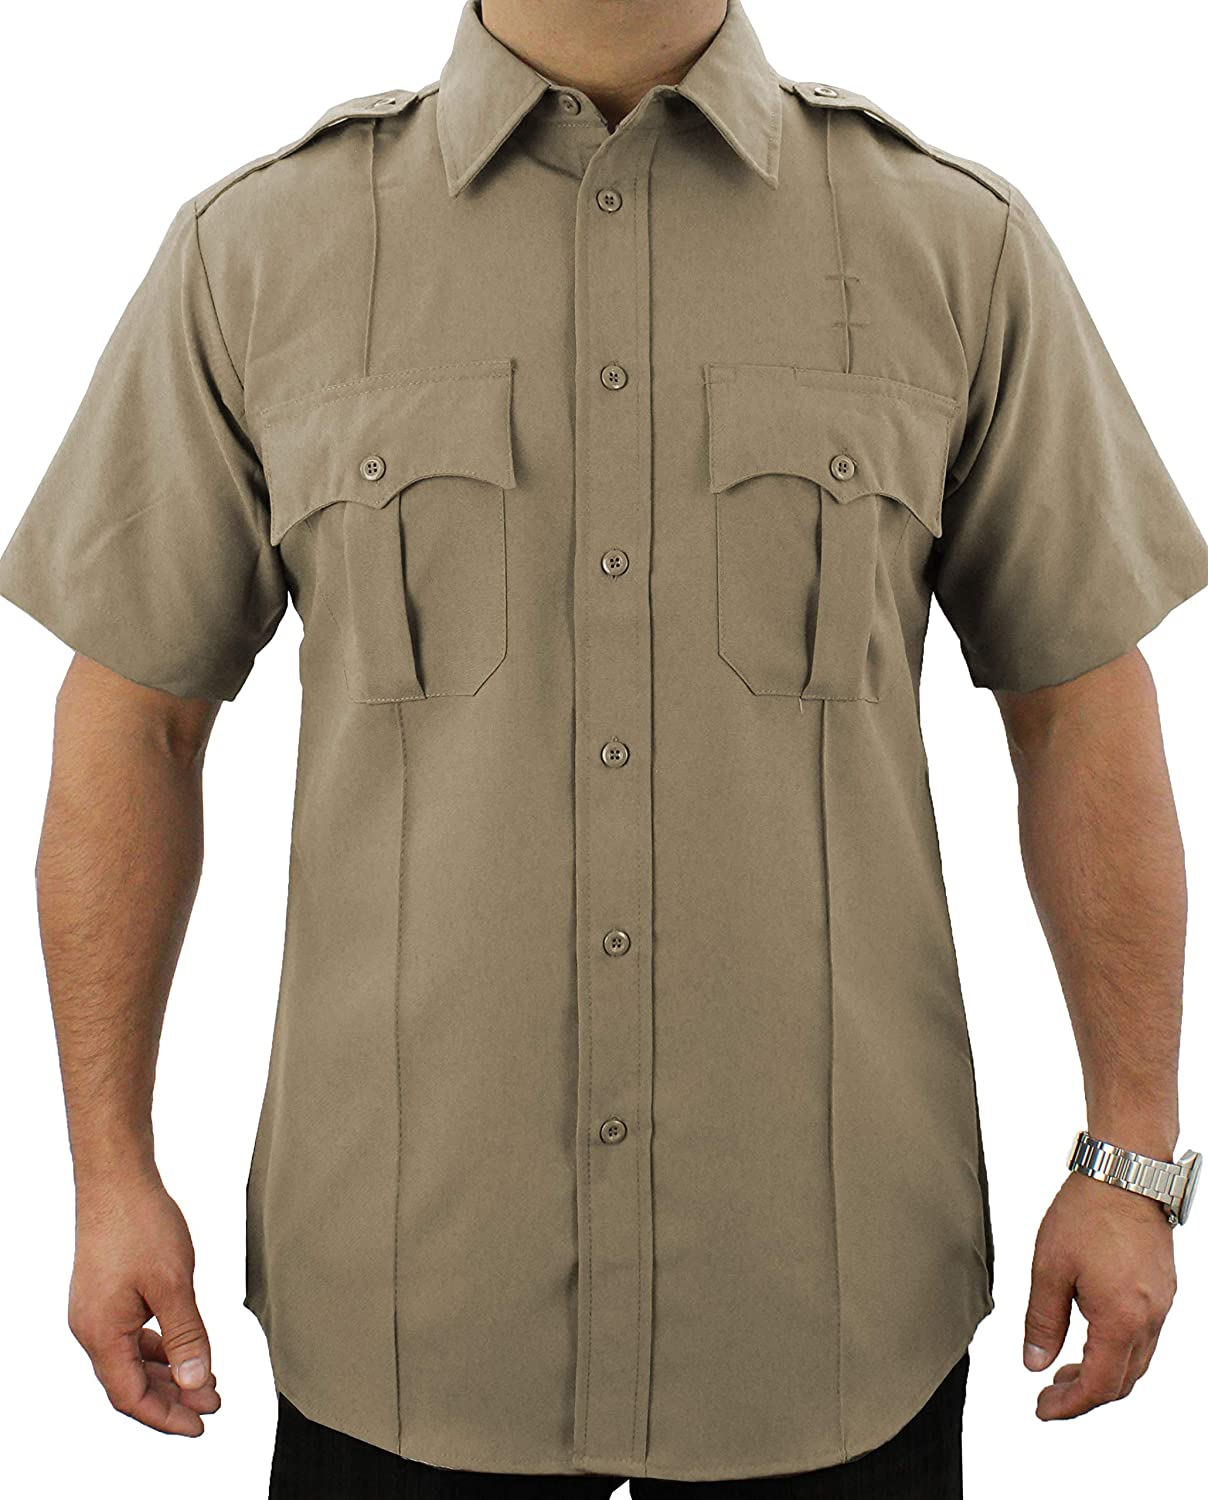 First Class 100% Polyester Short-Sleeve Adult Men's Uniform Shirt Tan